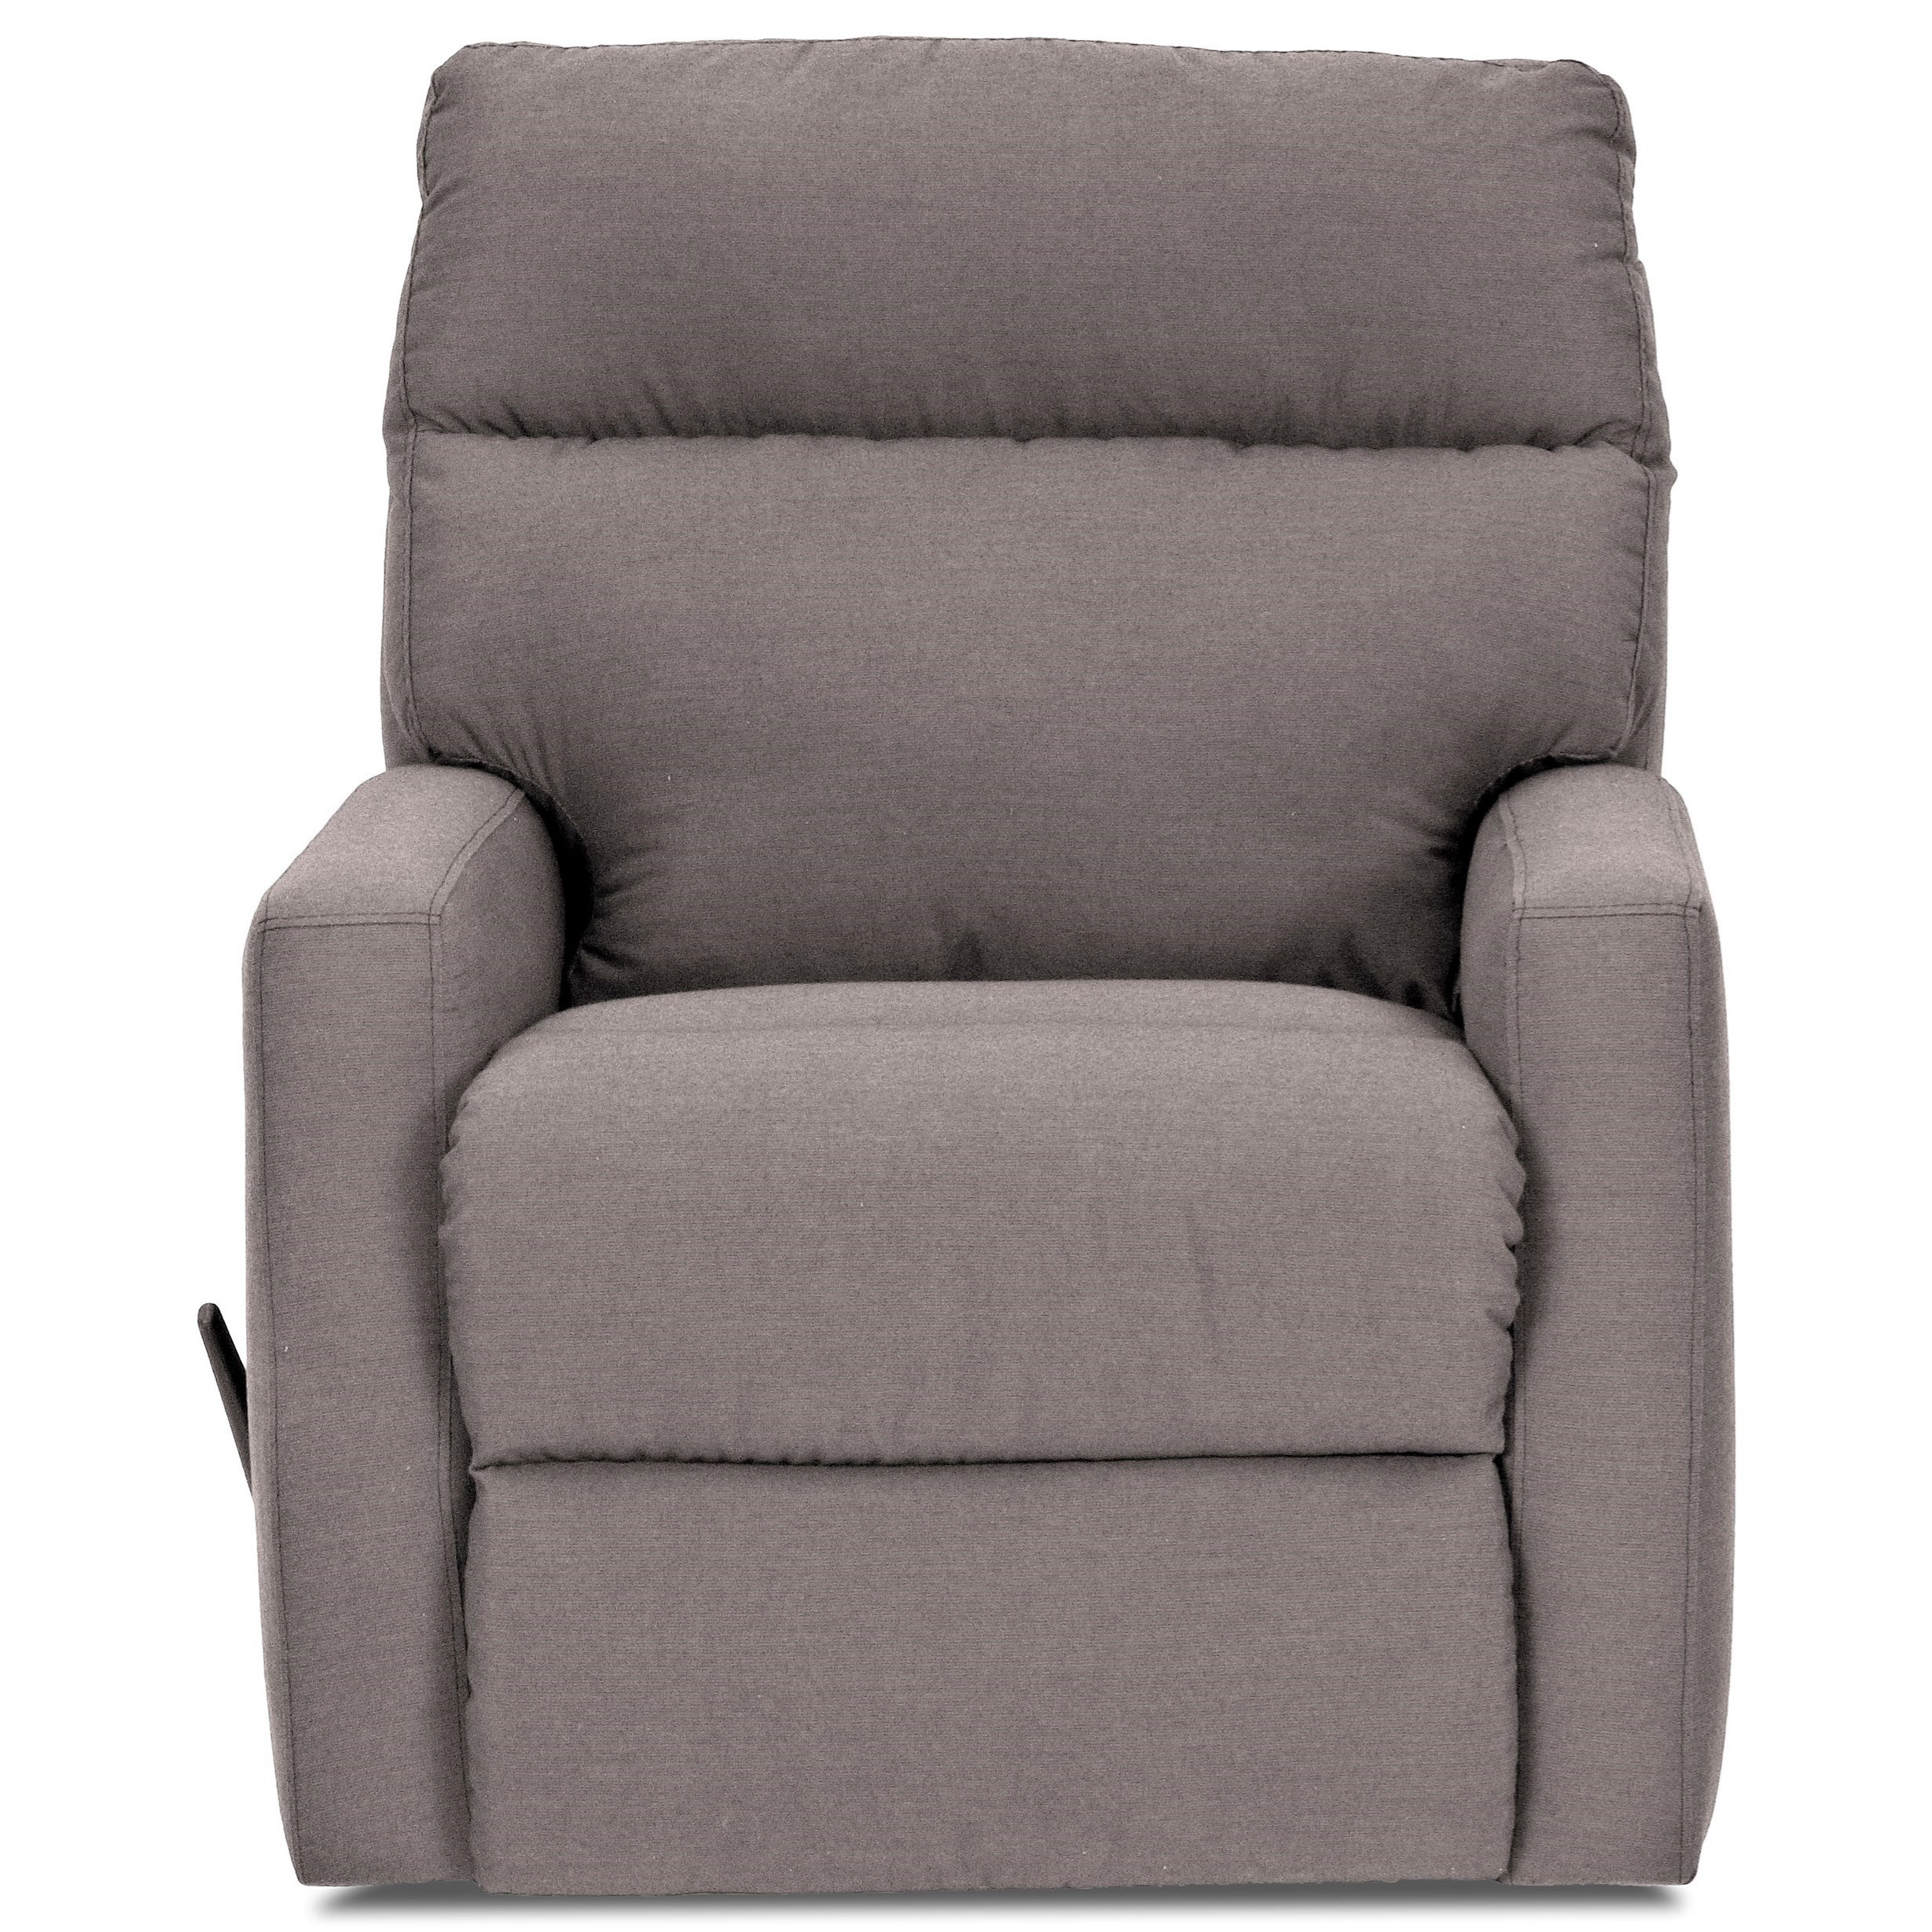 Swivel Gliding Reclining Chair with Soft Track Arms